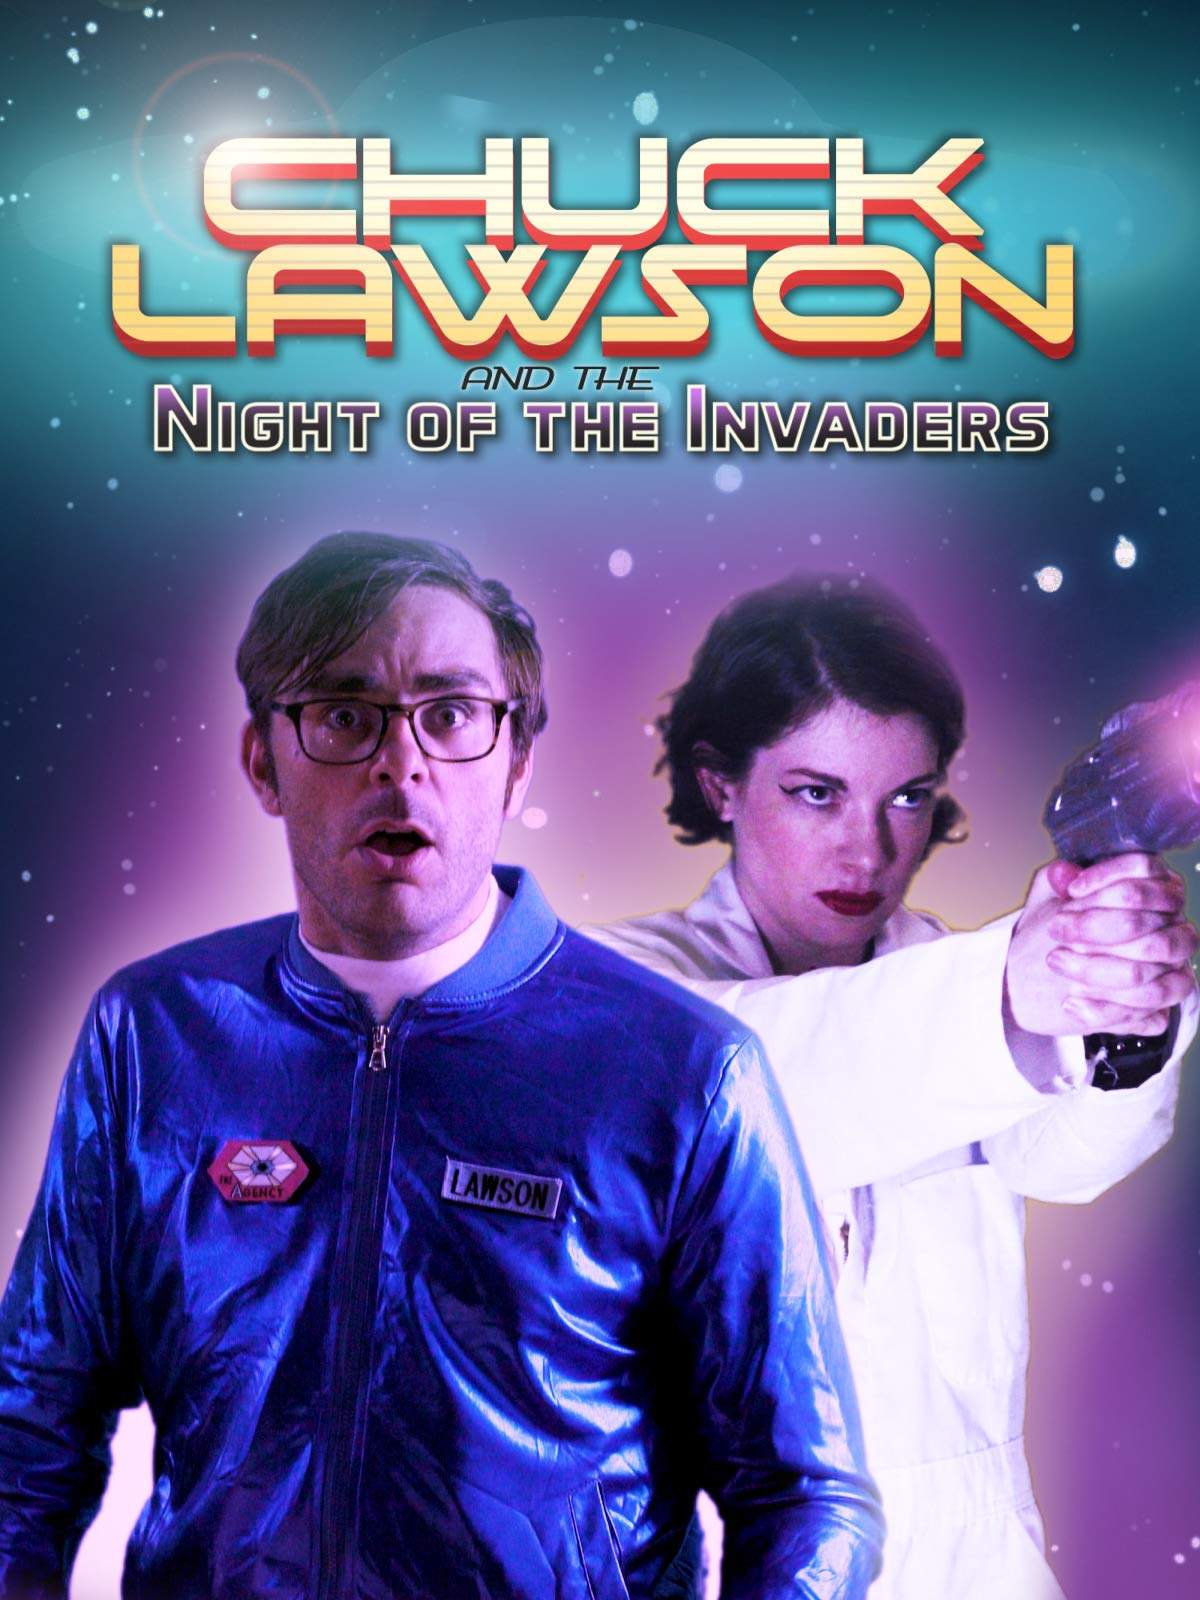 Chuck Lawson and the Night of the Invaders